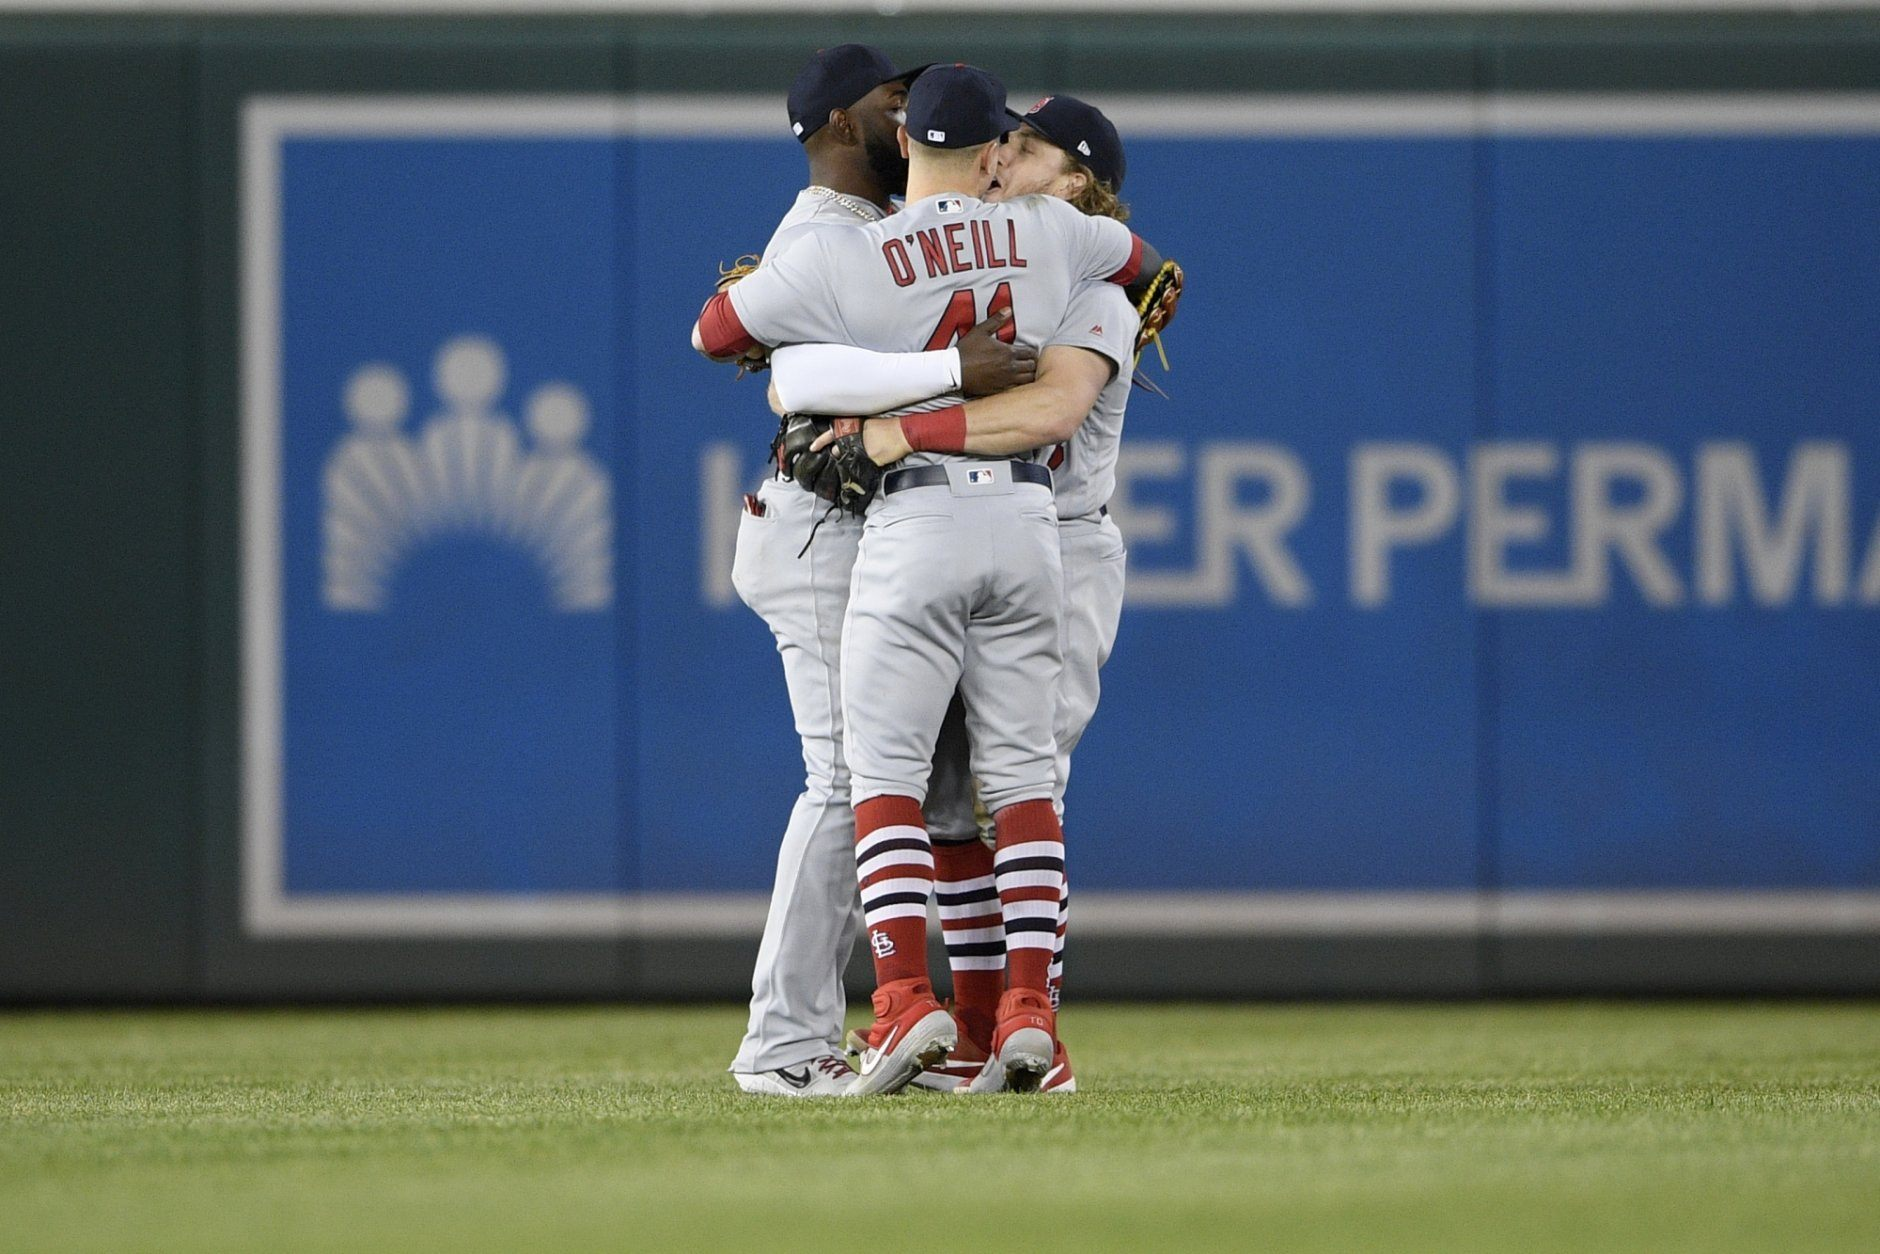 Cardinals score 6 in 5th inning to beat Nationals 6-3 | WTOP